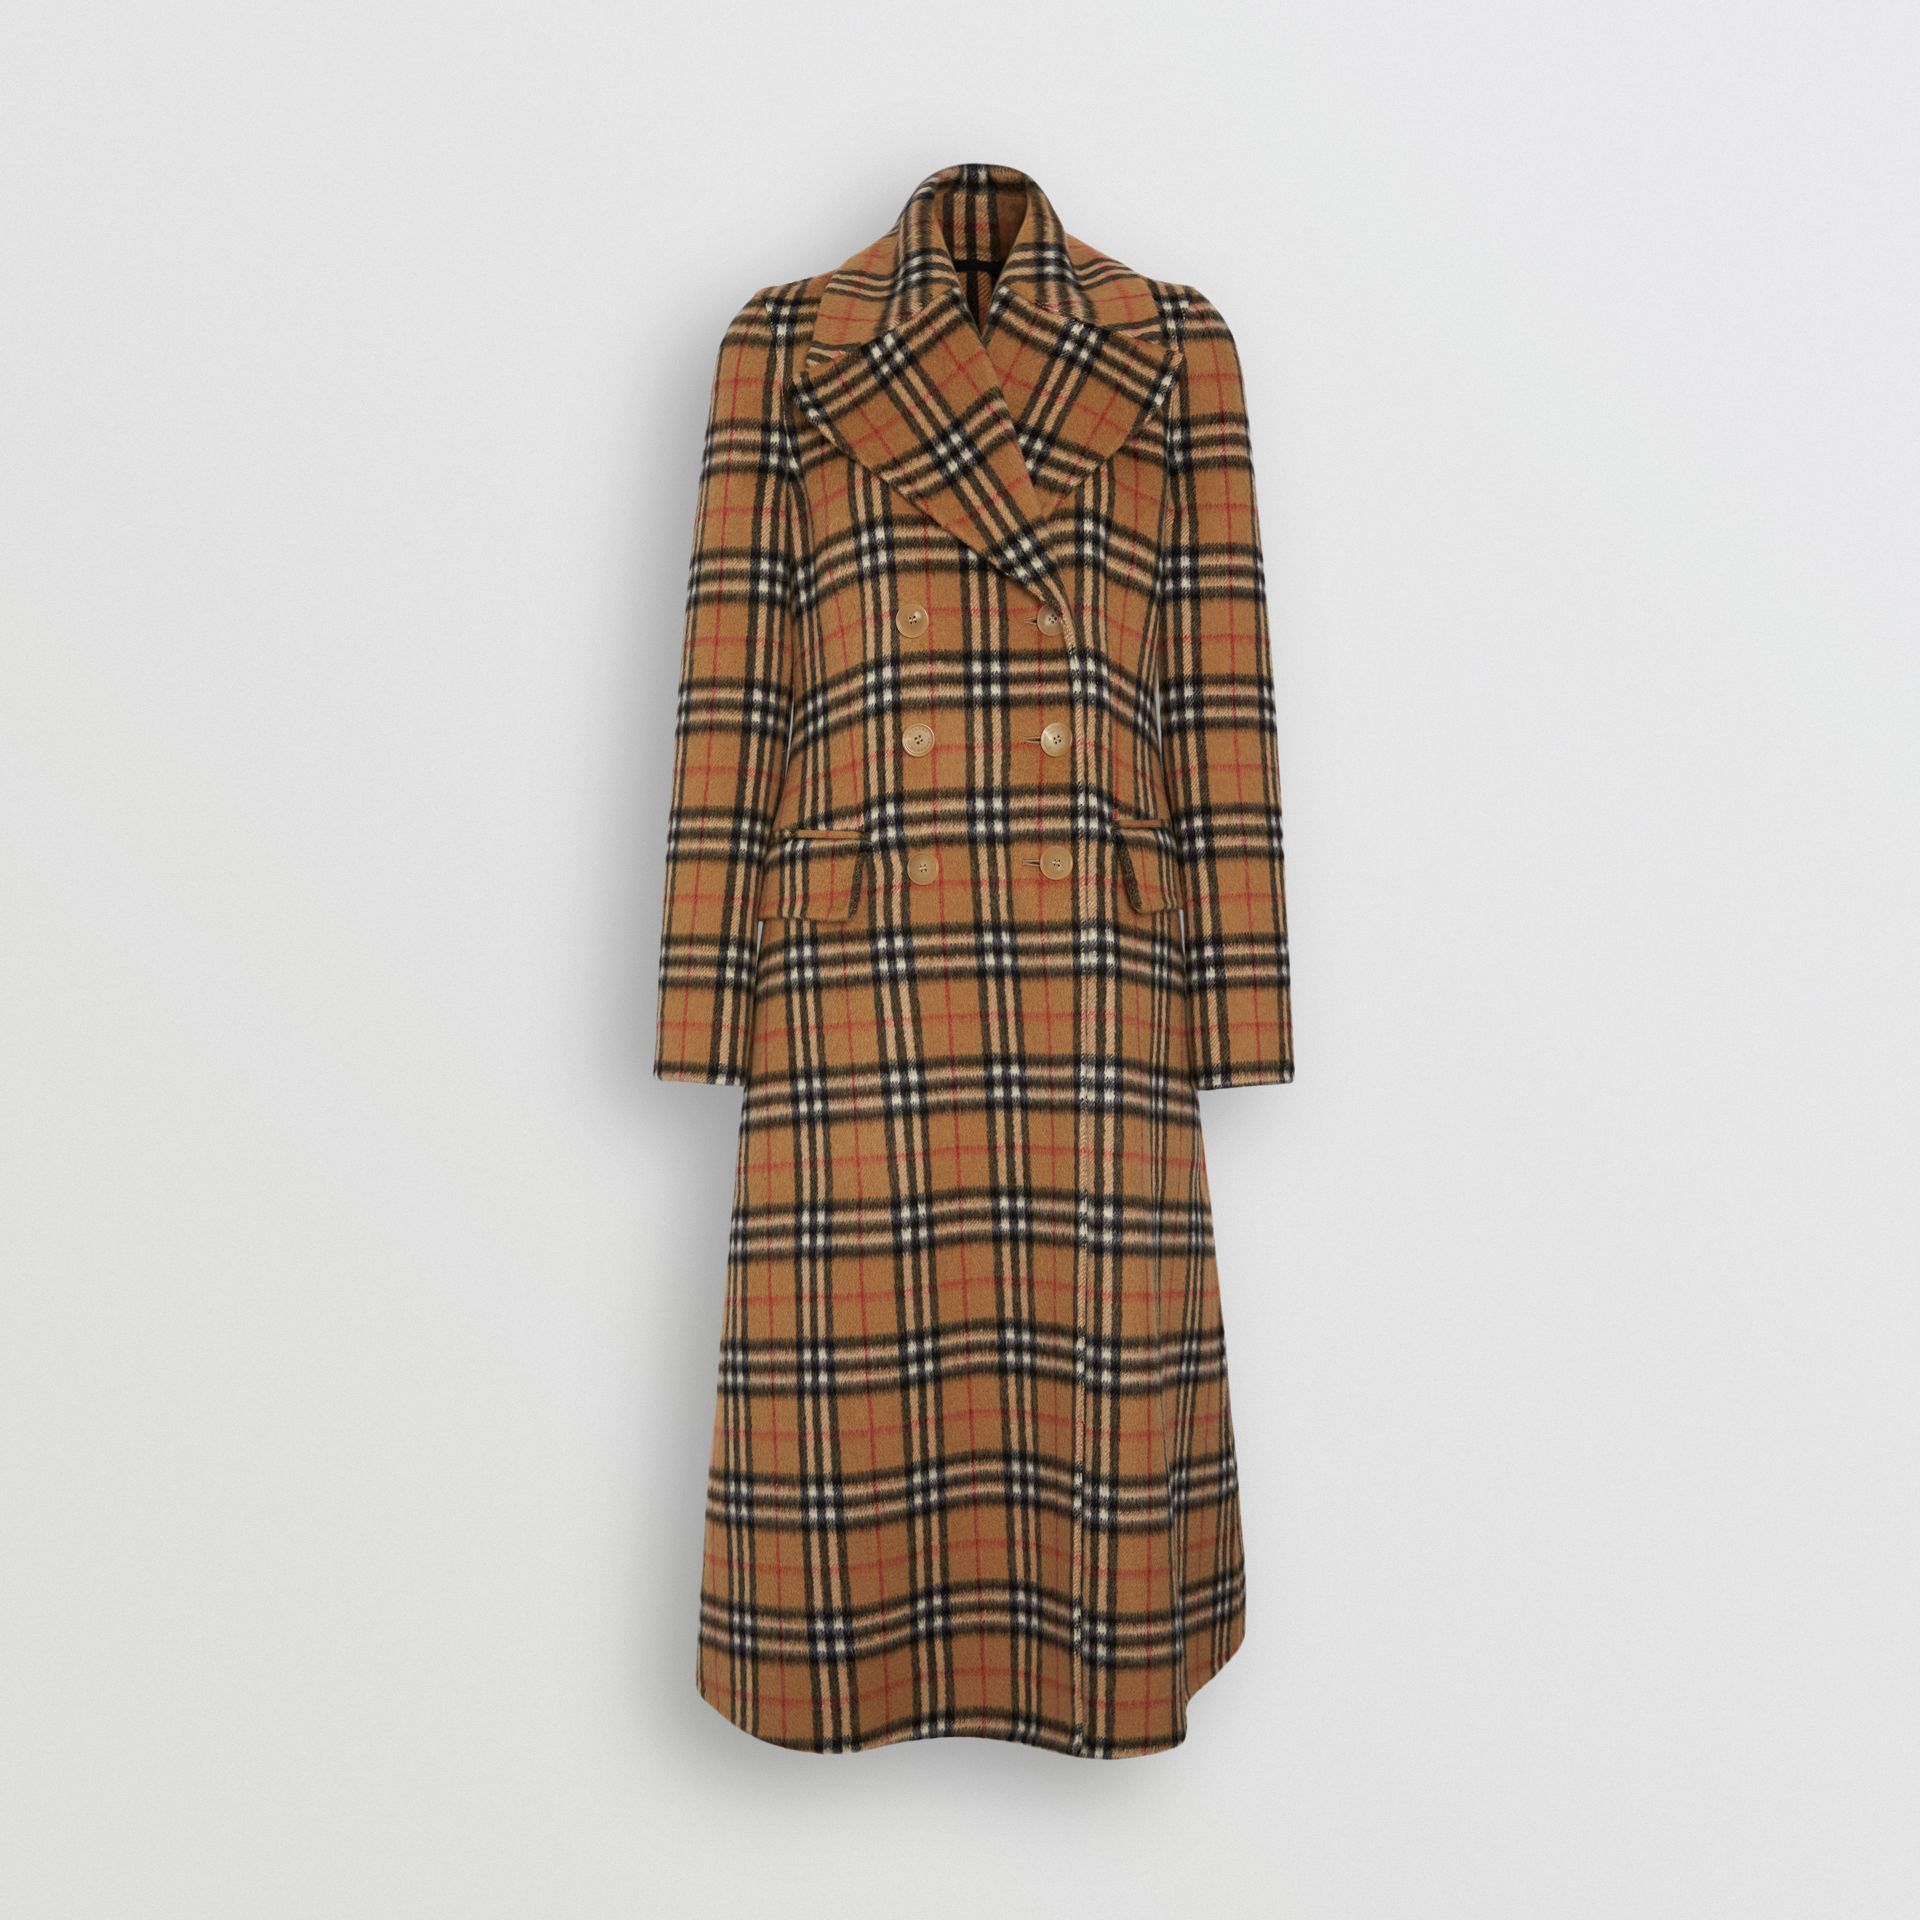 Manteau ajusté en alpaga à motif Vintage check (Jaune Antique) - Femme | Burberry - photo de la galerie 3